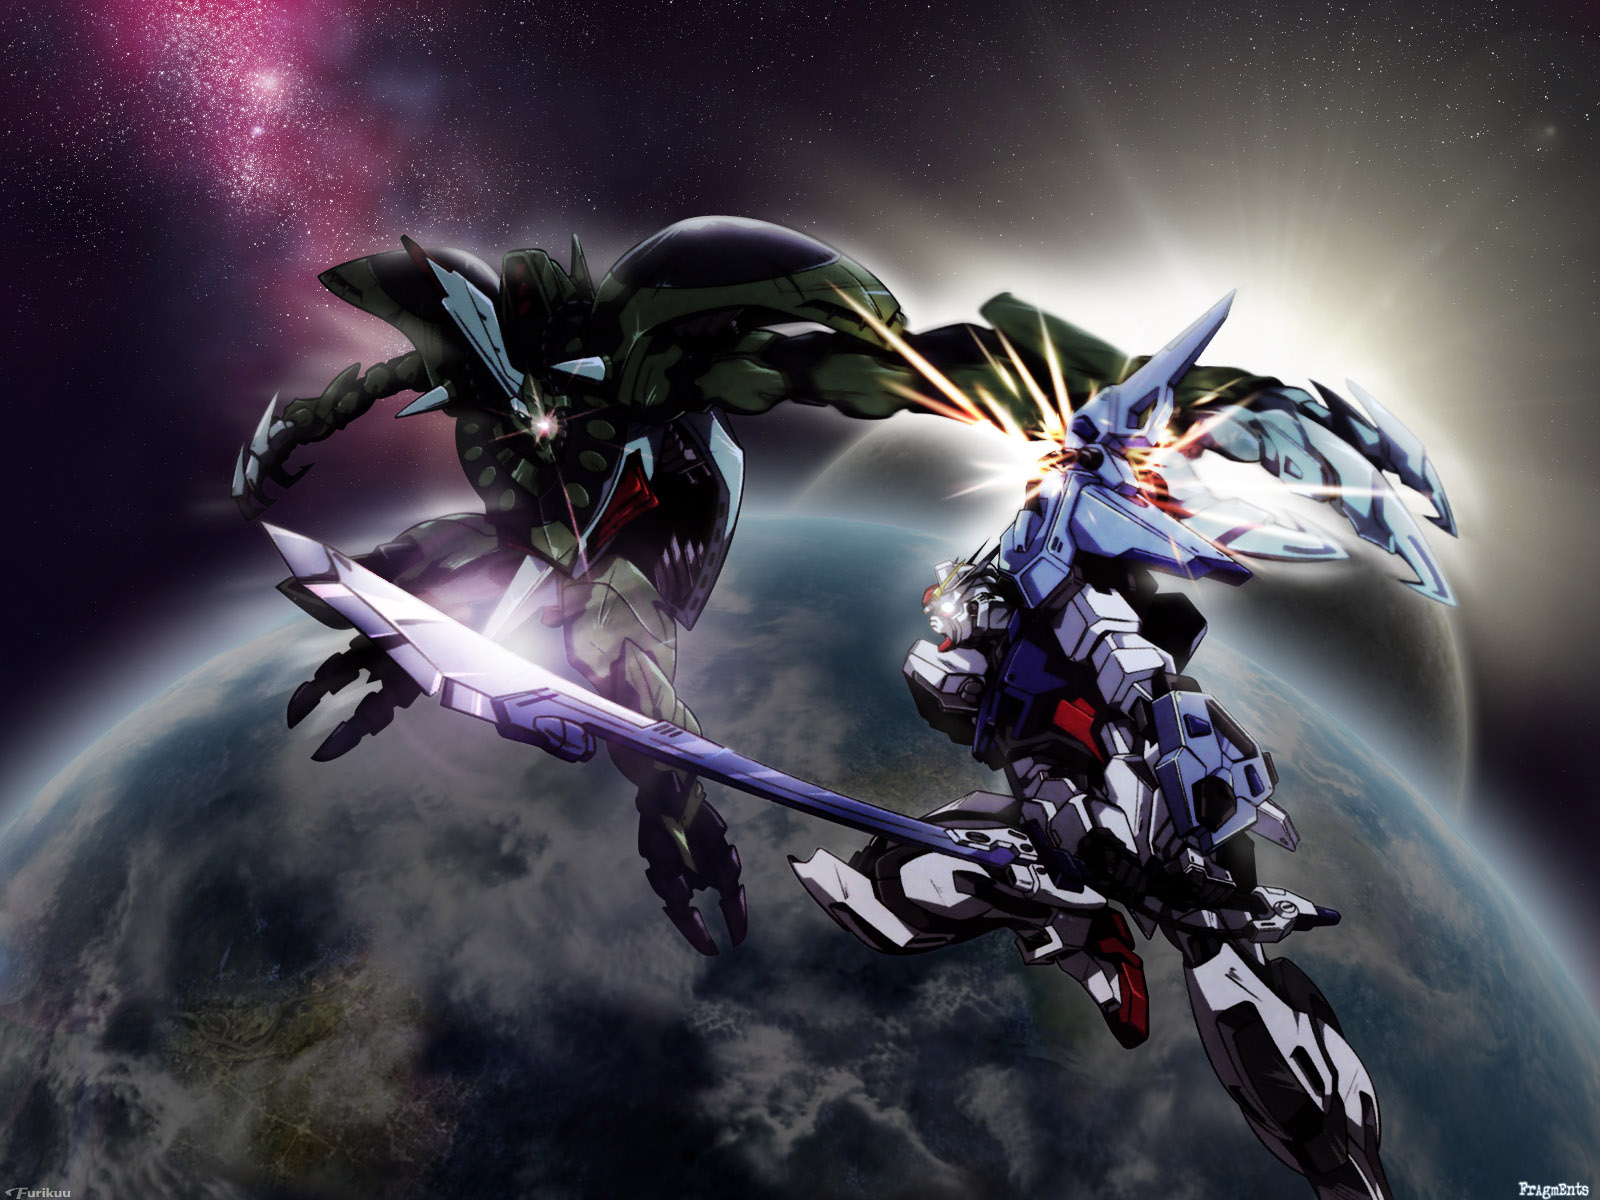 Gundam Seed Wallpaper HD wallpapers   Gundam Seed Wallpaper 1600x1200